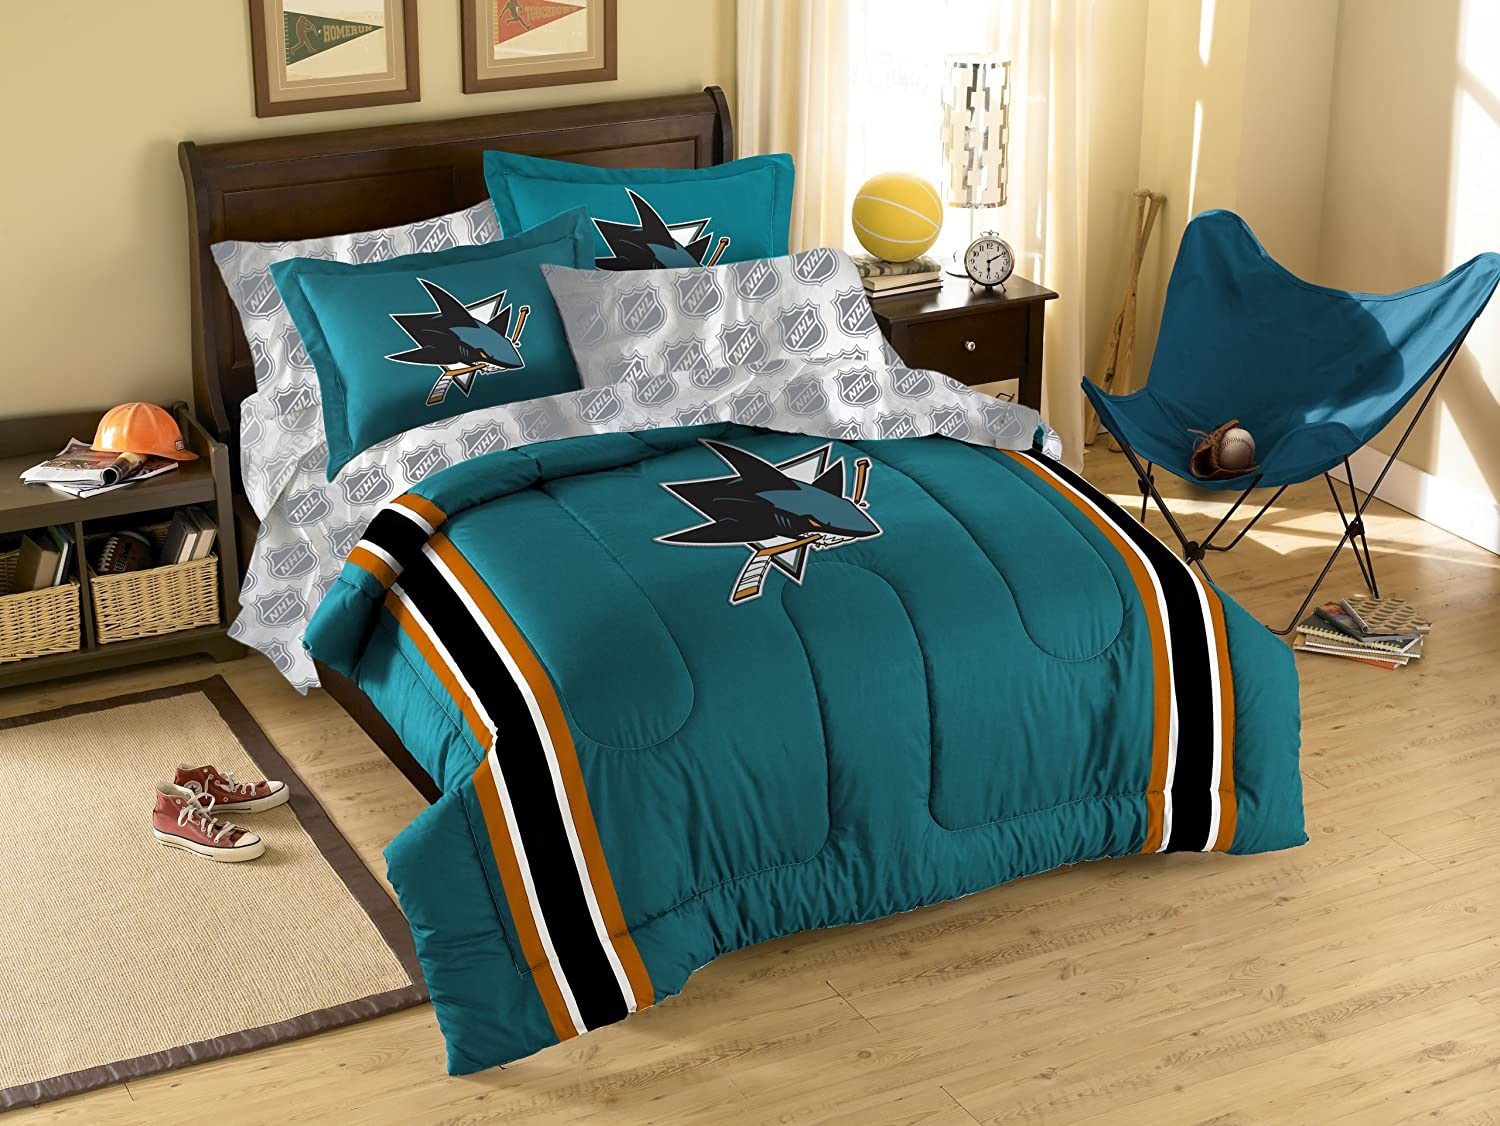 Nhl San Jose Sharks Twin Full Size Comforter With Sham Set Amazon In Sports Fitness Outdoors